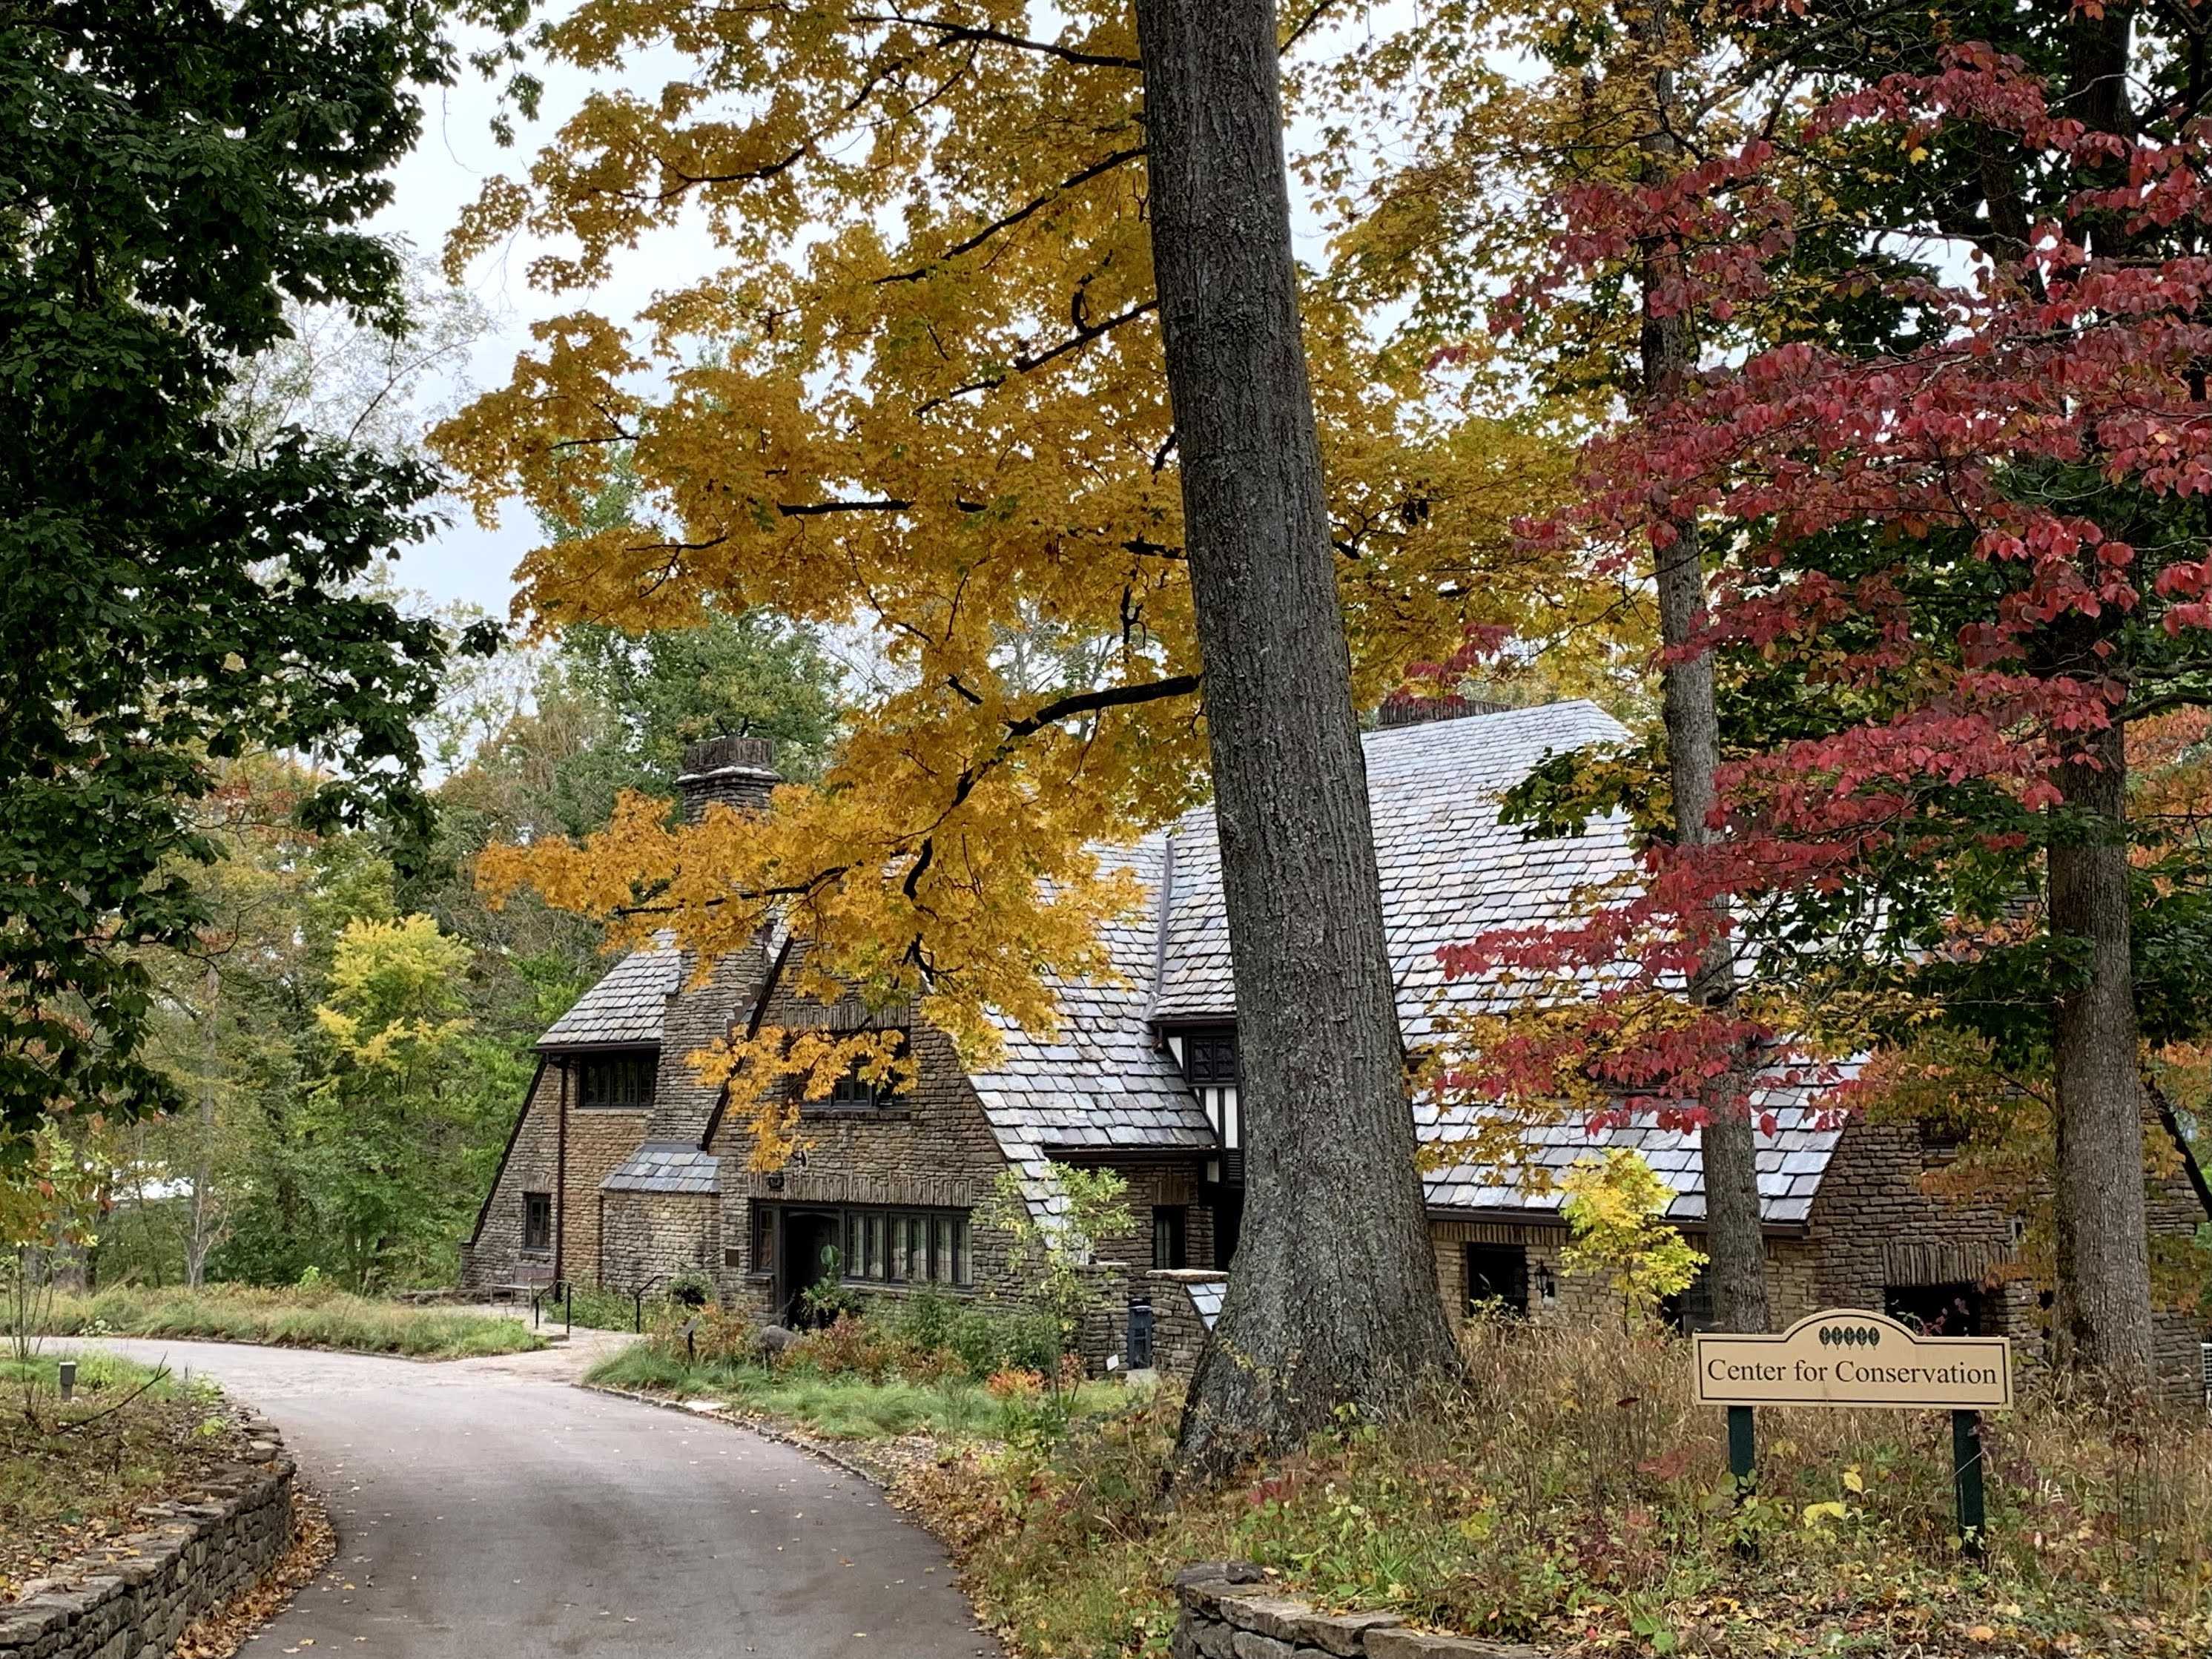 Image of Groesbeck Lodge in autumn, framed by fall foliage